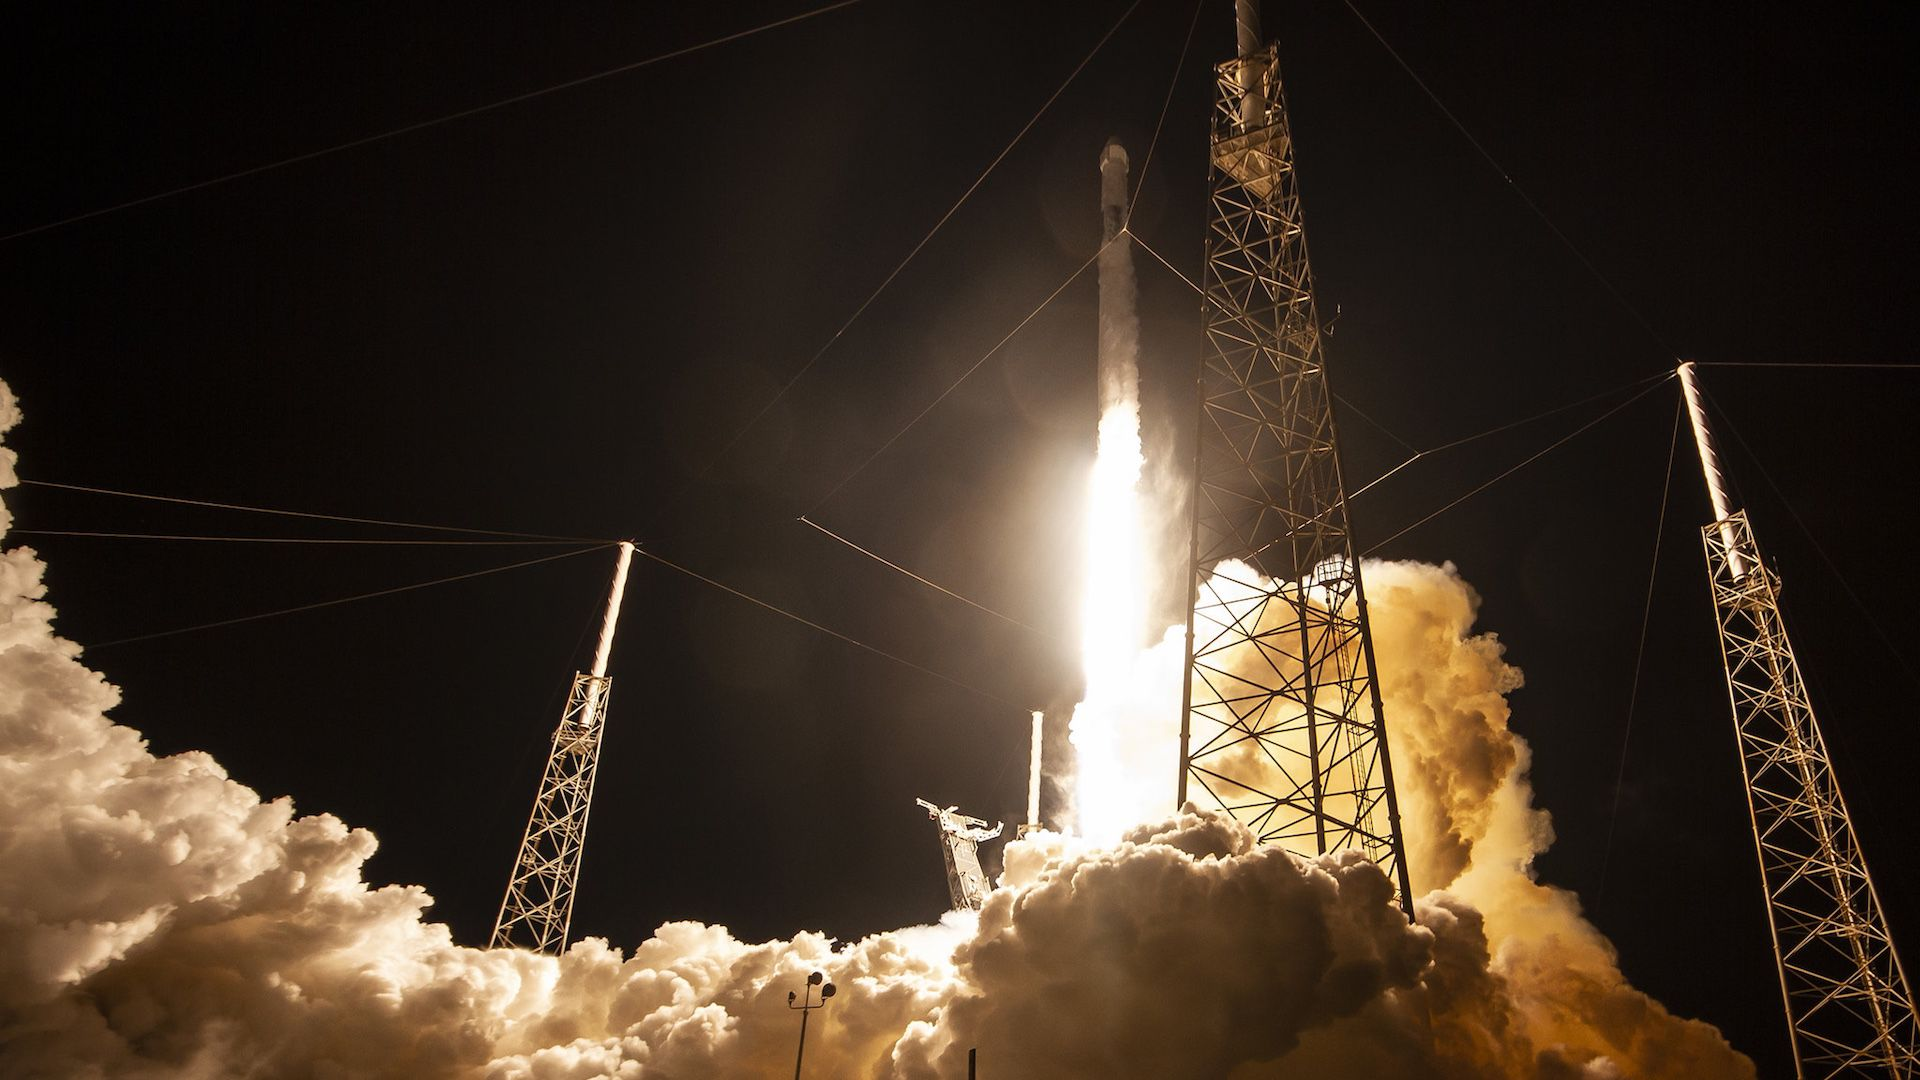 A SpaceX Falcon 9 rocket launch